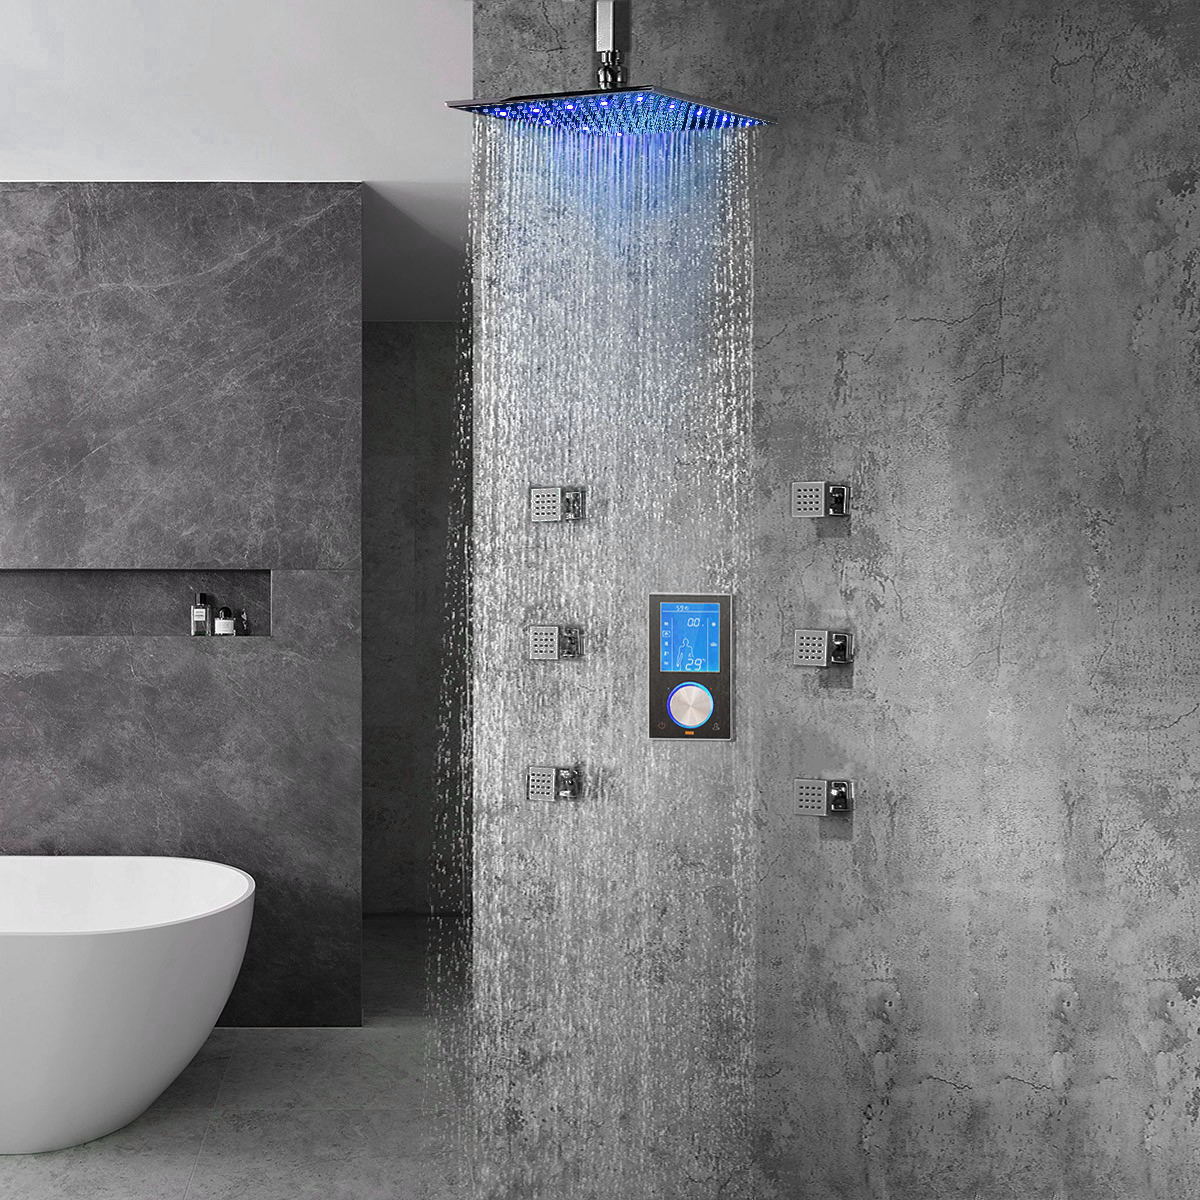 Romo Solid Brass Color Changing Led Rain Shower Head With Digital Mixer And 360 Adjustable Body Jets